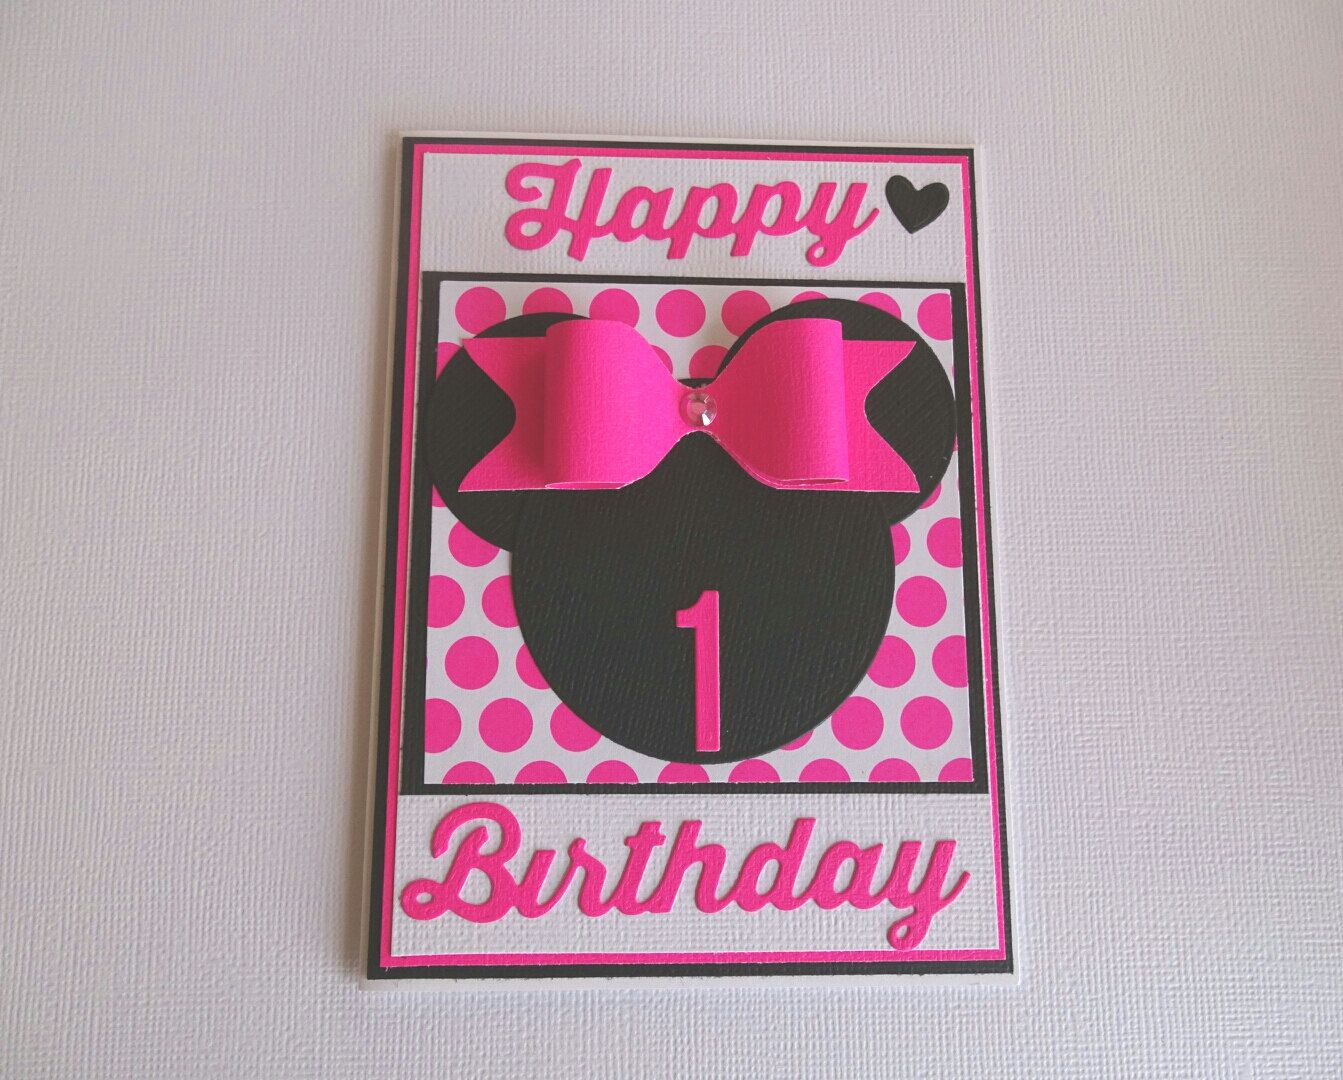 Happy 1st Birthday Birthday Cards, Wishes, Images, Lines